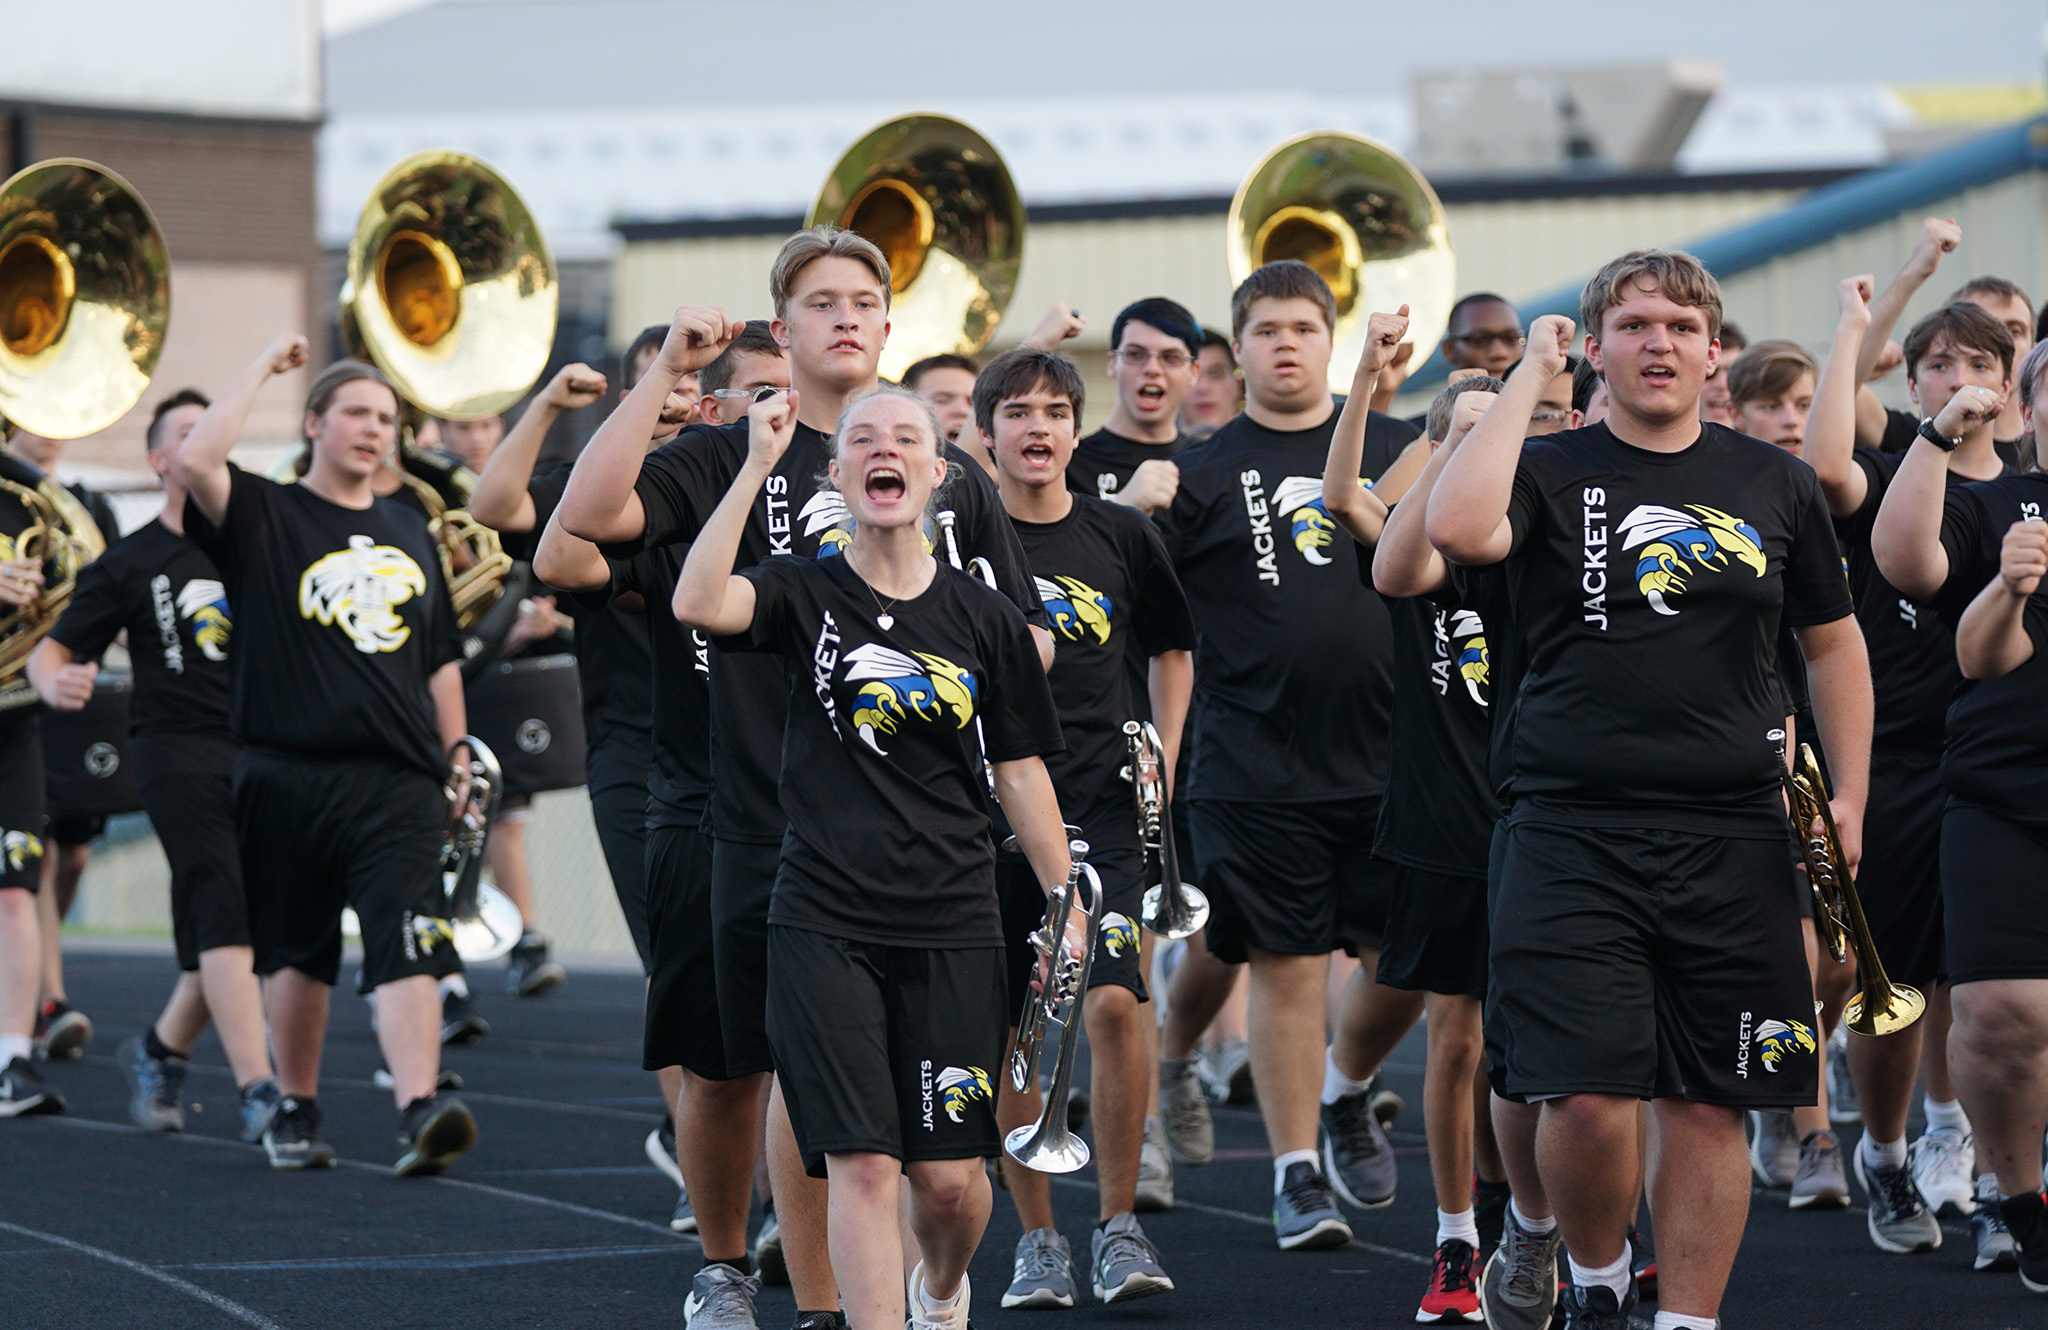 Image of band students cheering